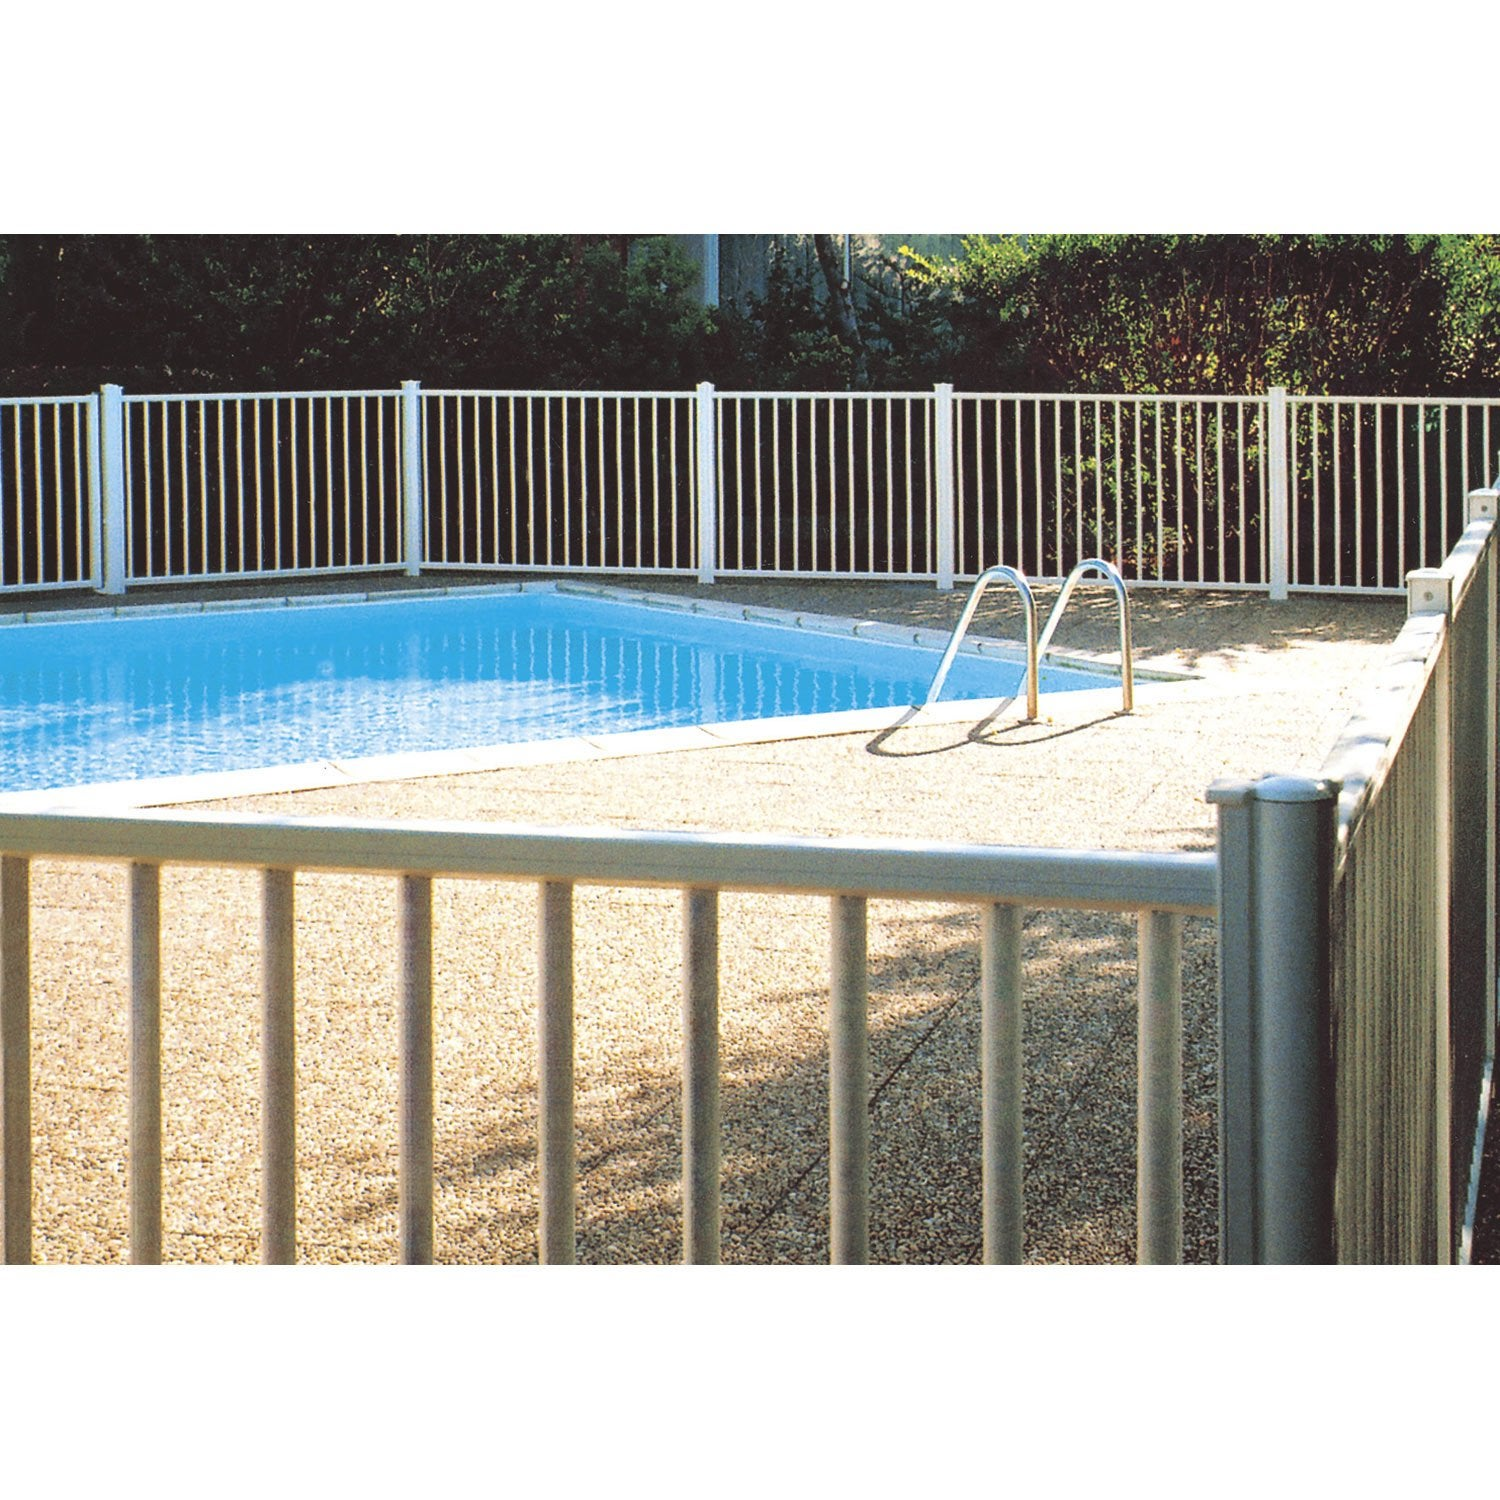 Barri re pour piscine aluminium issambres blanc 9010 h for Barriere de piscine amovible